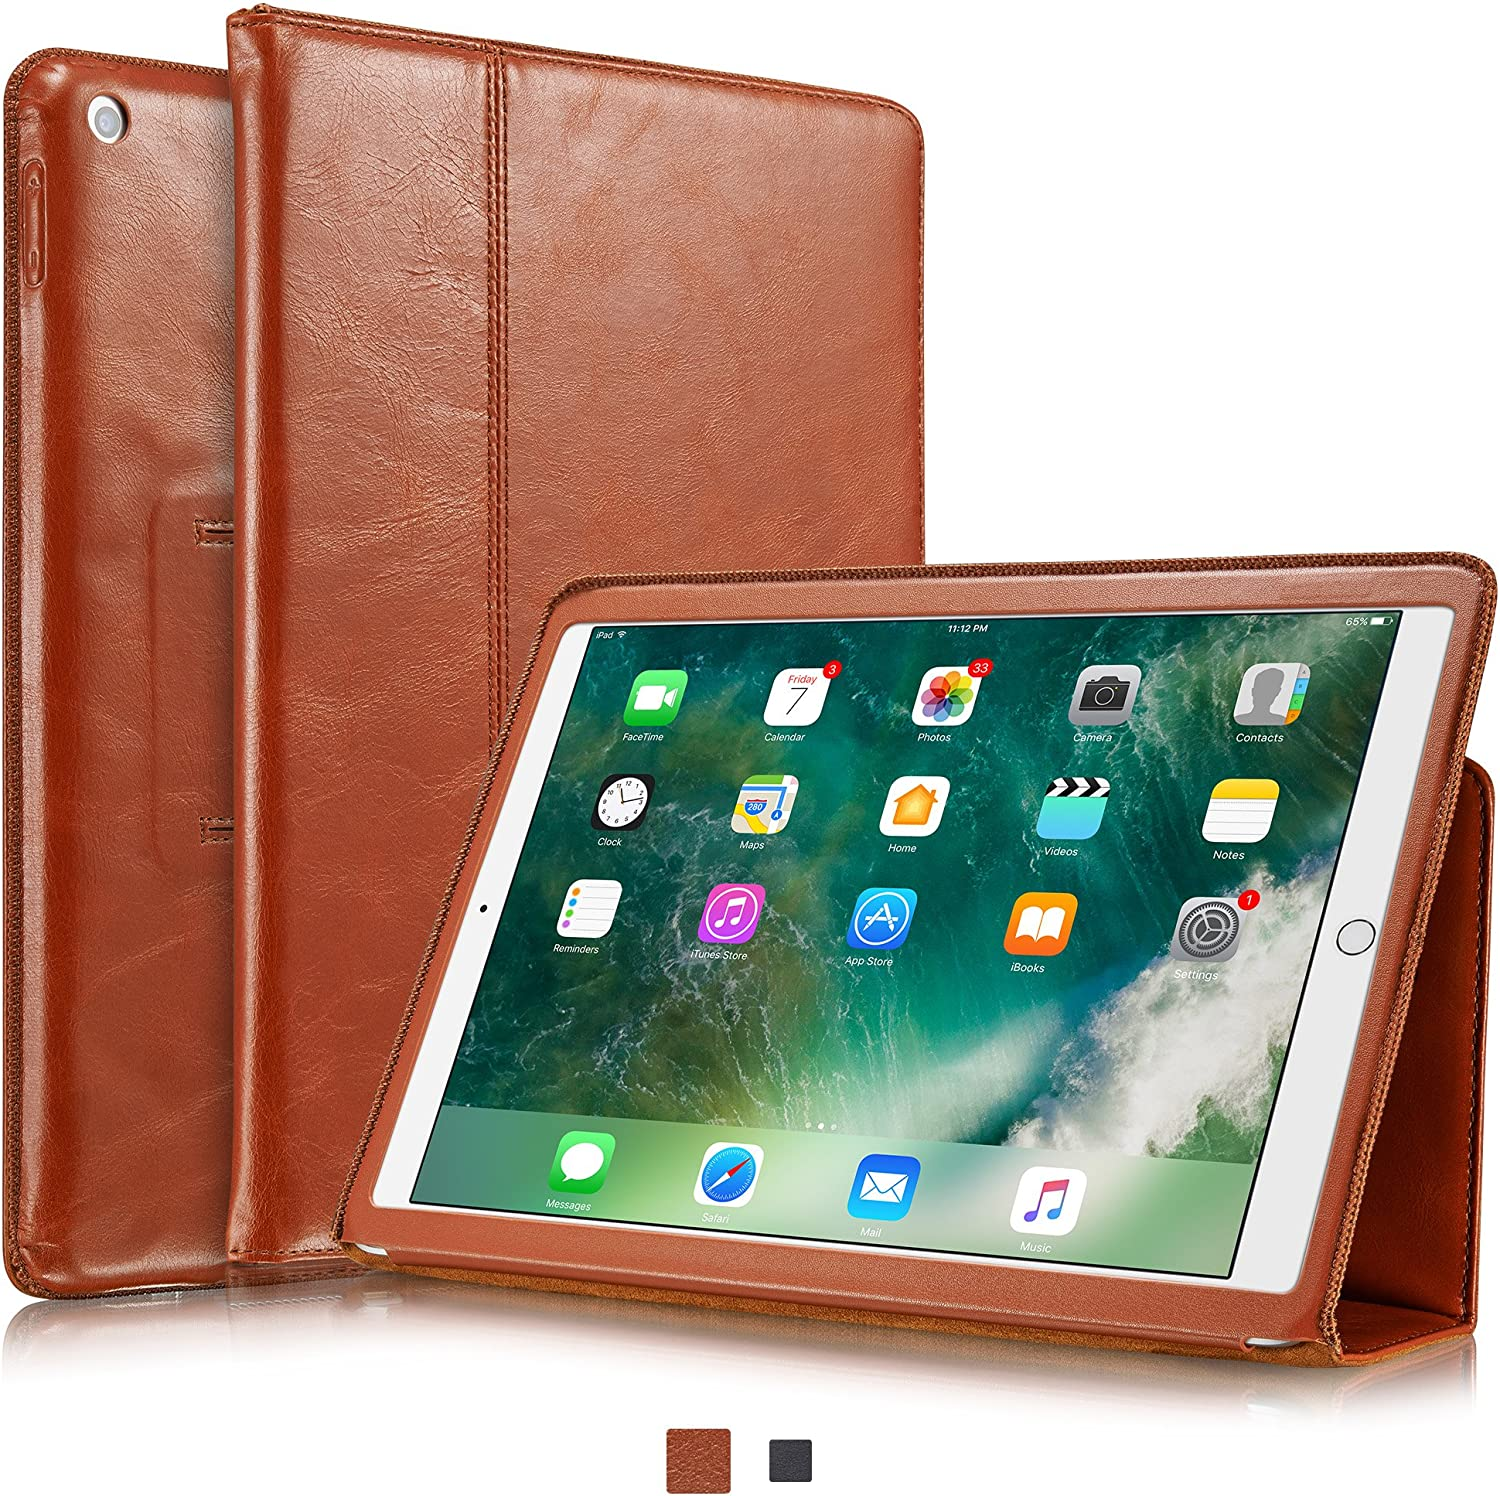 """KAVAJ Case Leather Cover Berlin Works with Apple iPad 2020/2019 (8&7th Gen.) 10.2"""" Cognac-Brown Genuine Cowhide Leather with Built-in Stand Auto Wake/Sleep Function. Slim Fit Smart Folio Covers"""